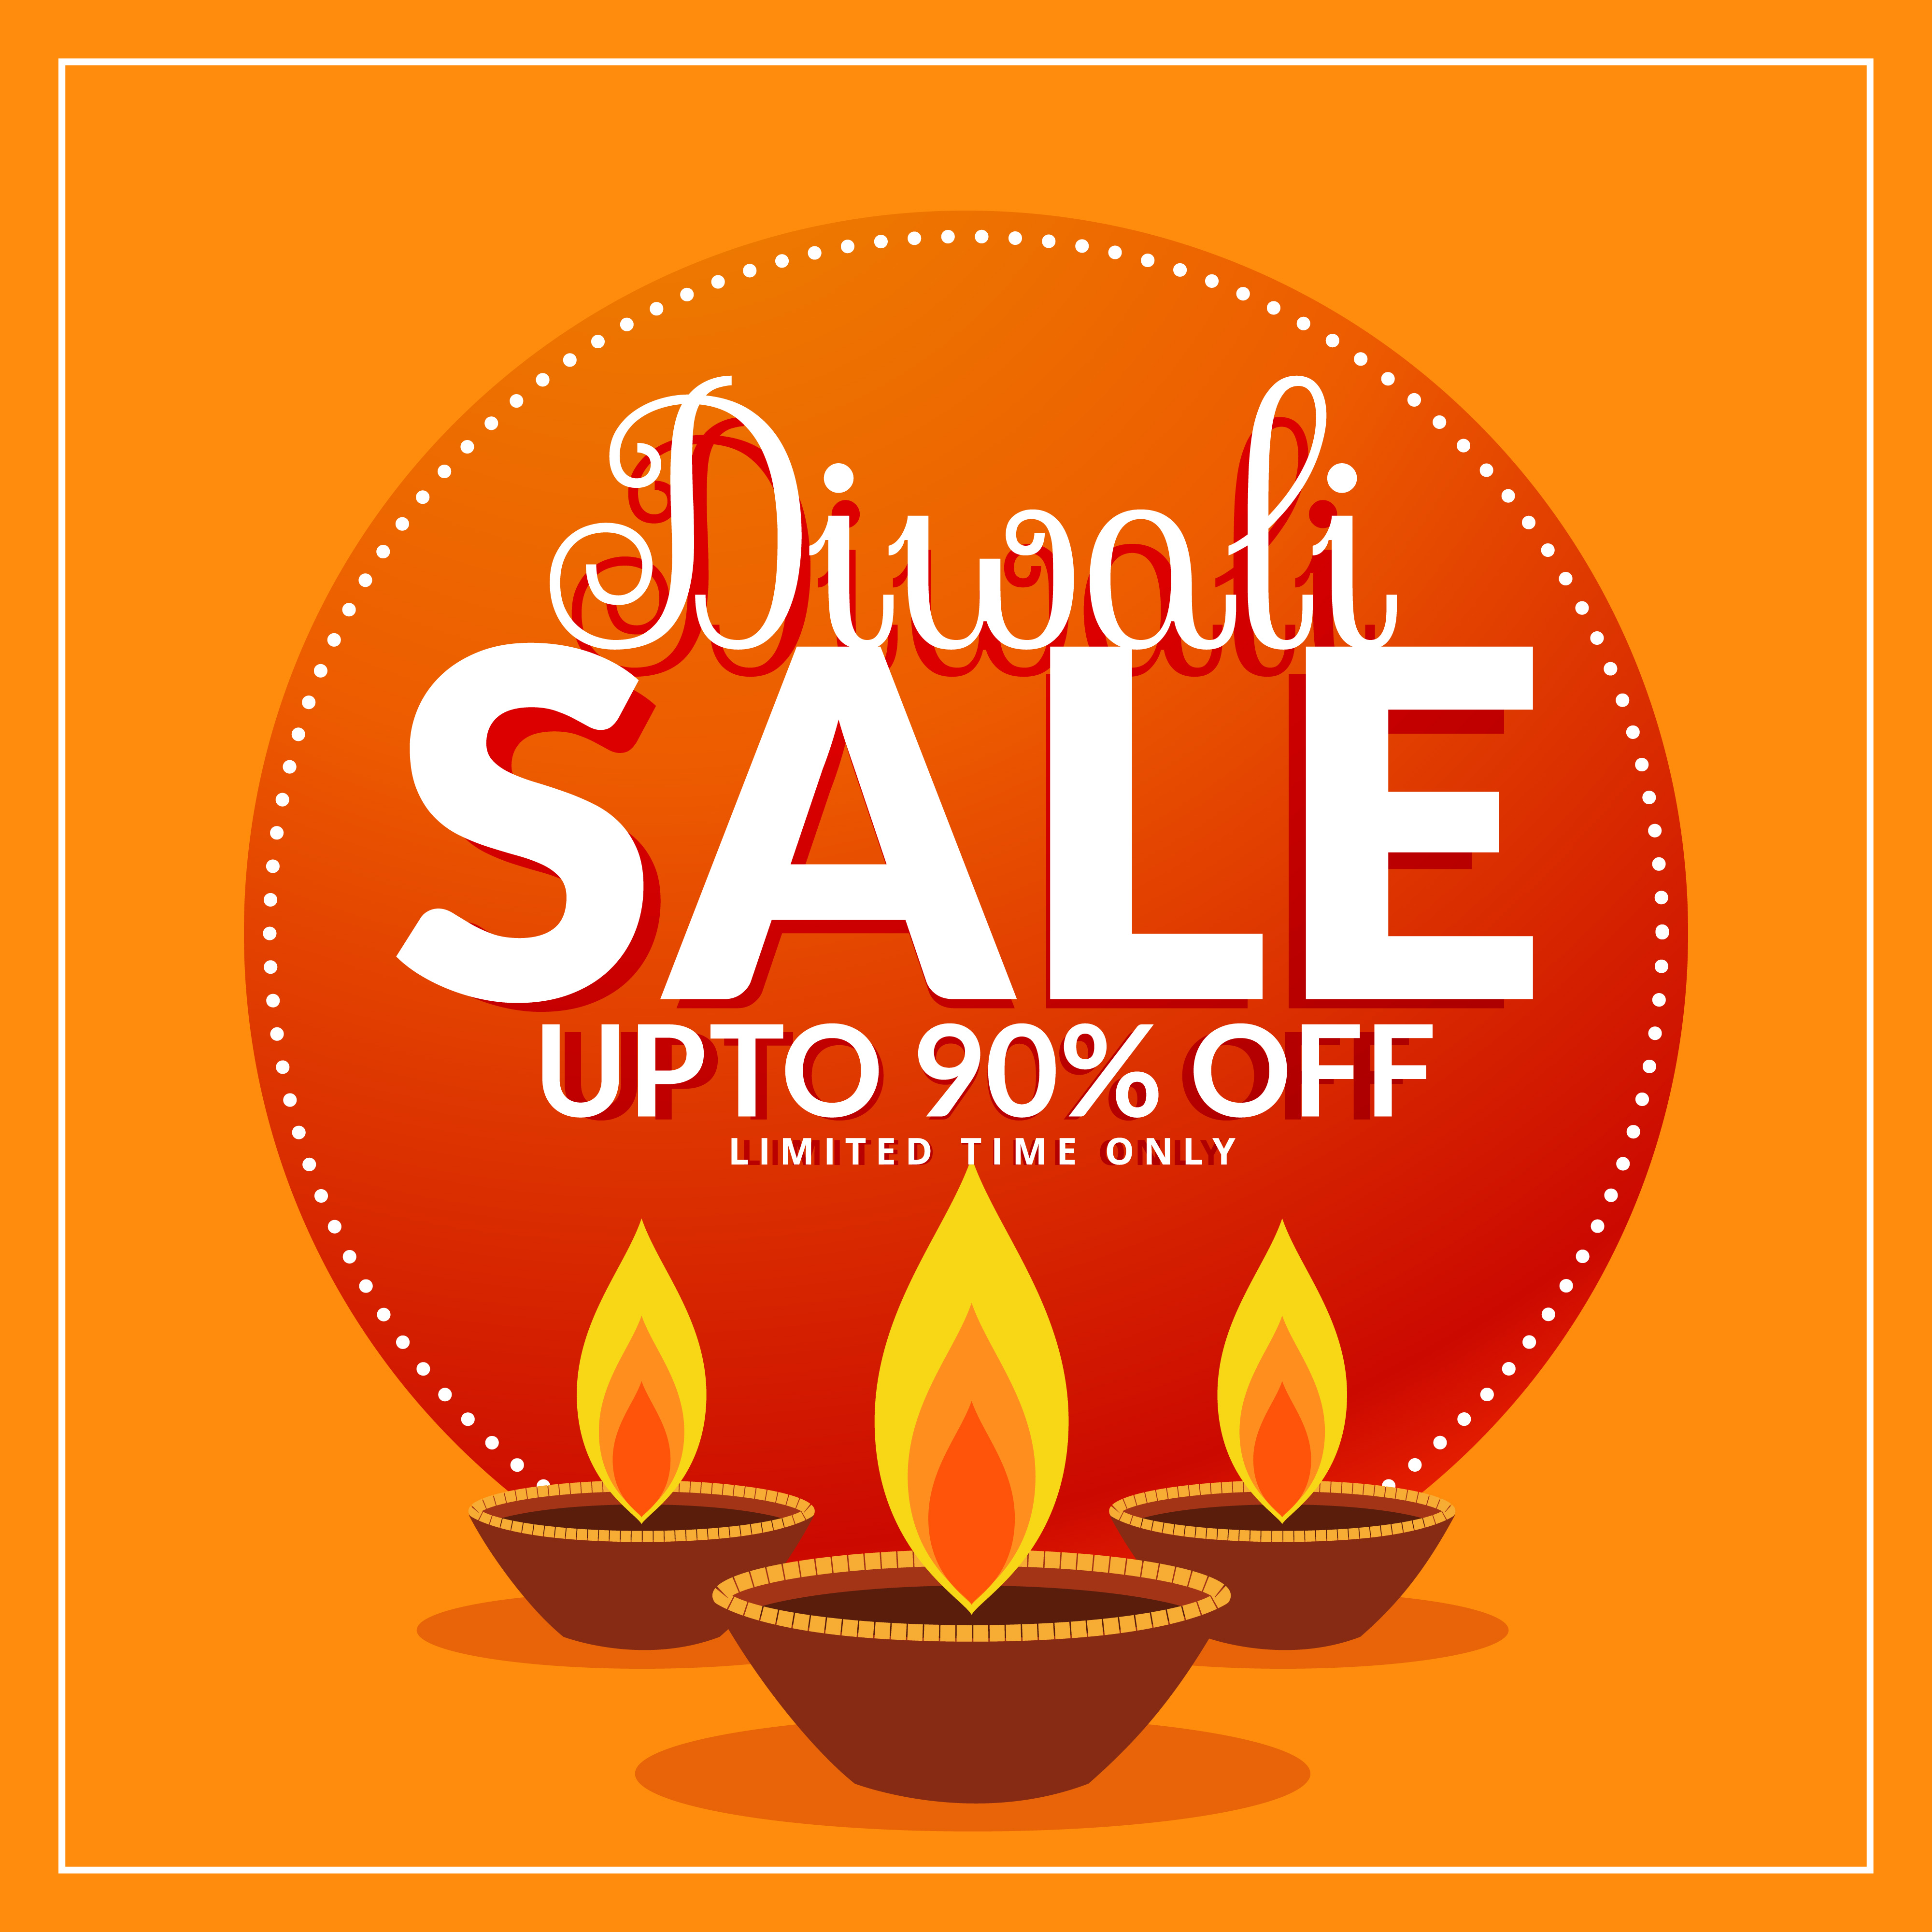 Diwali Festival Discount And Sale Poster Template With